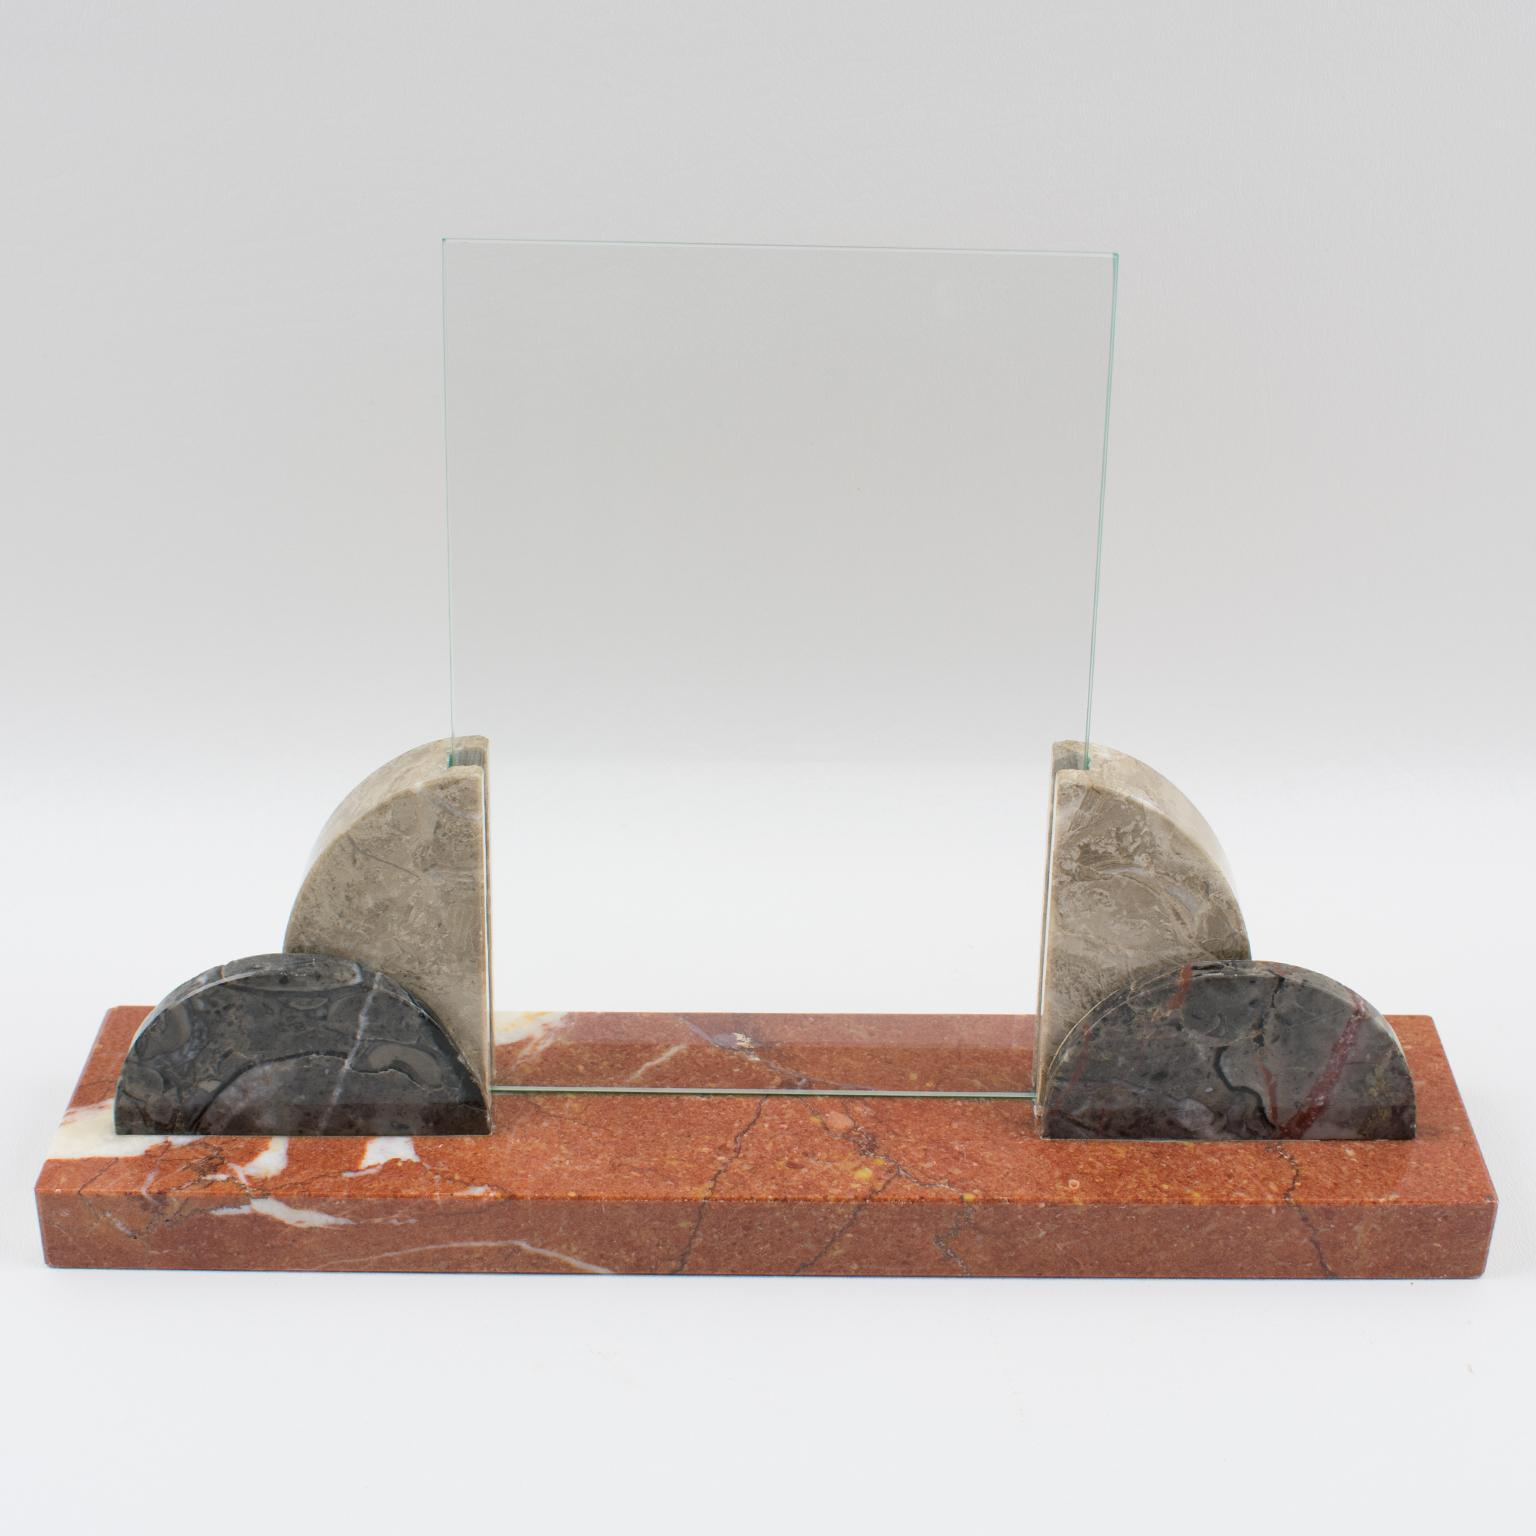 Appealing ART DECO polished marble PHOTO frame from the 1930/'s